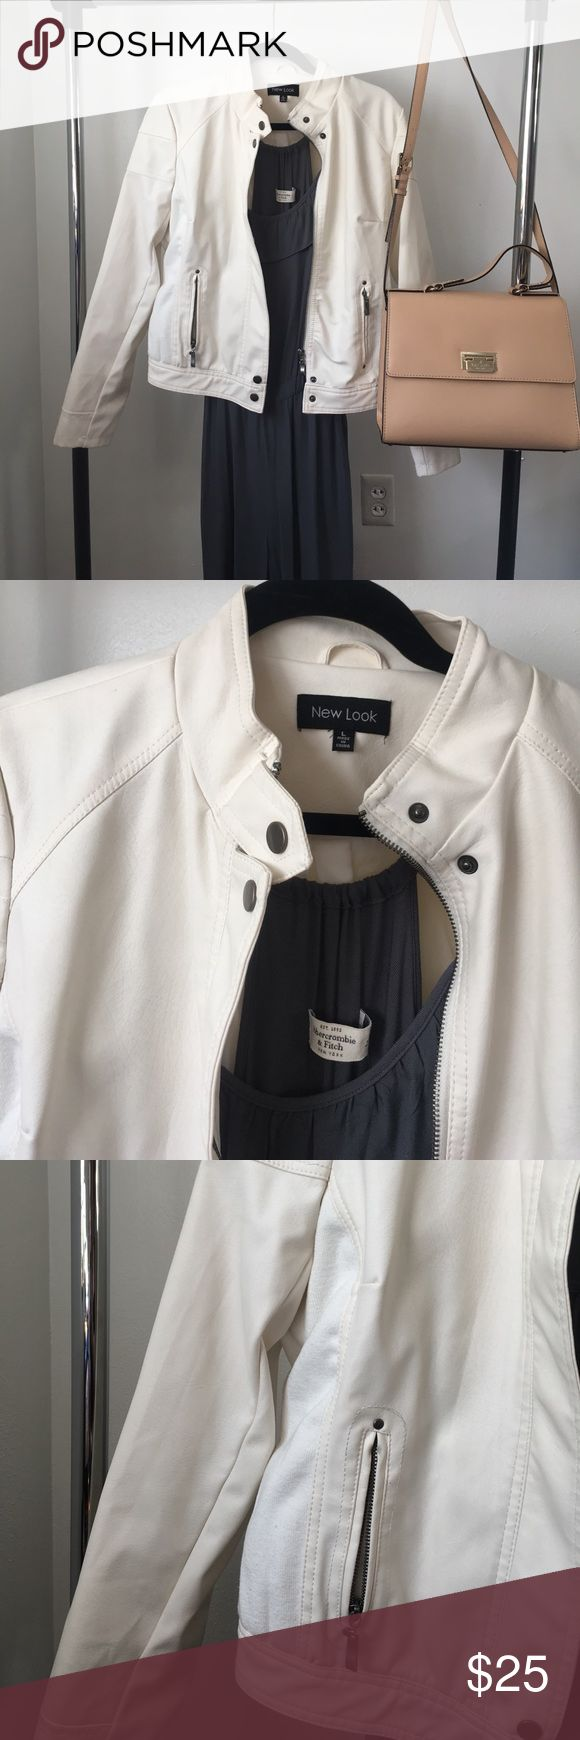 Fall 🍂 White Faux Leather Jacket This piece is perfect for wear with scarves and boots or a dress and heels! Works both ways!! Very very lightly used! Less than 5 wears on it!  Comes from a smoke free and pet free home! New Look Jackets & Coats